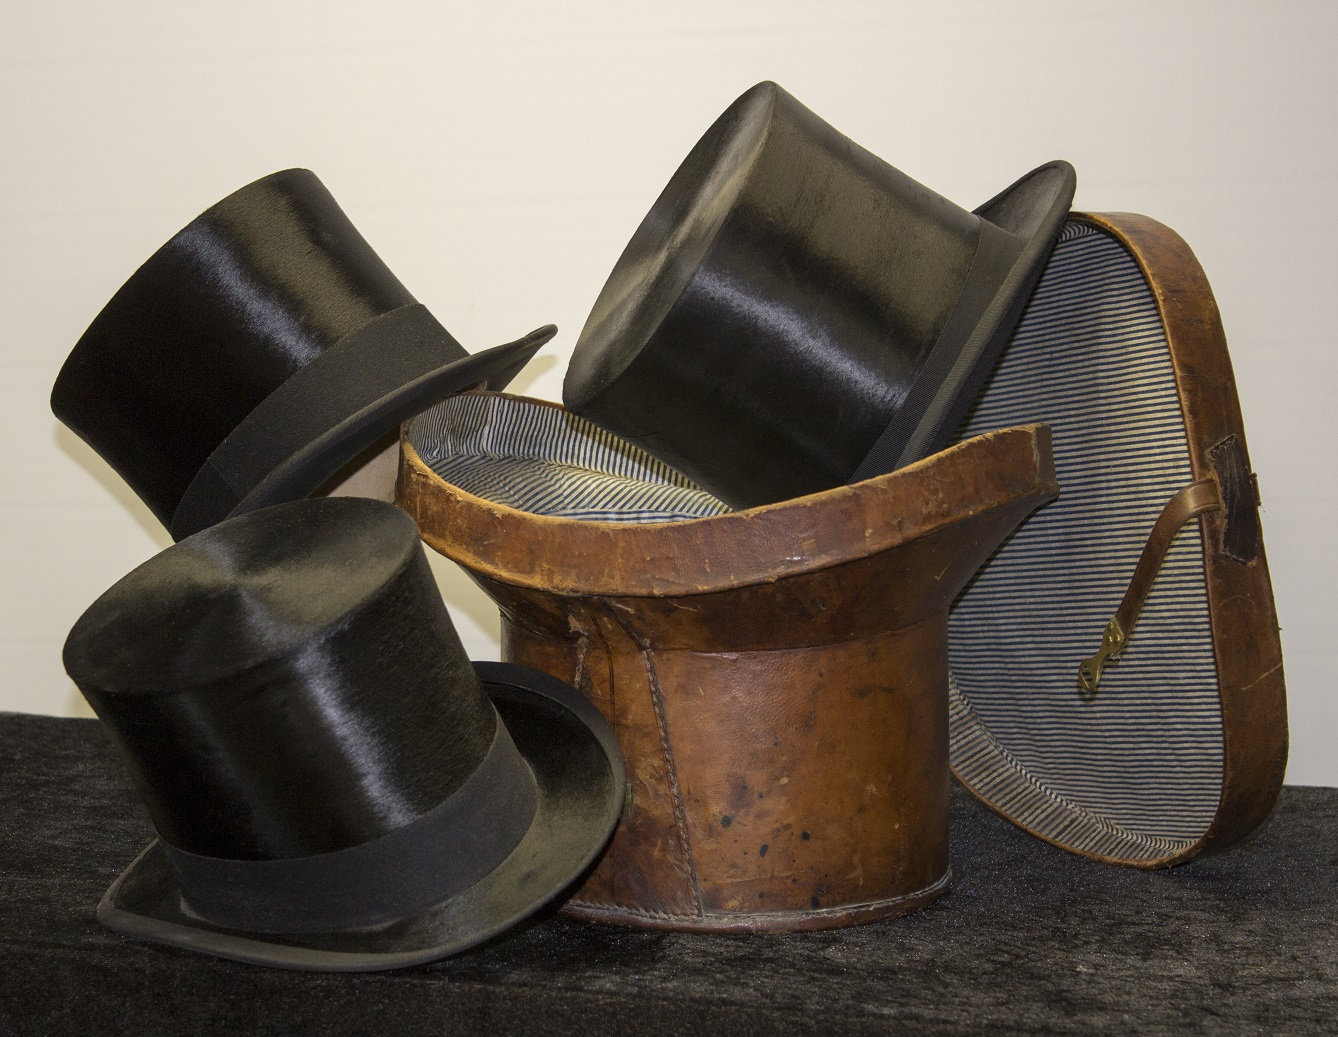 A selection of antique silk black top hats along with a traditional leather hat box